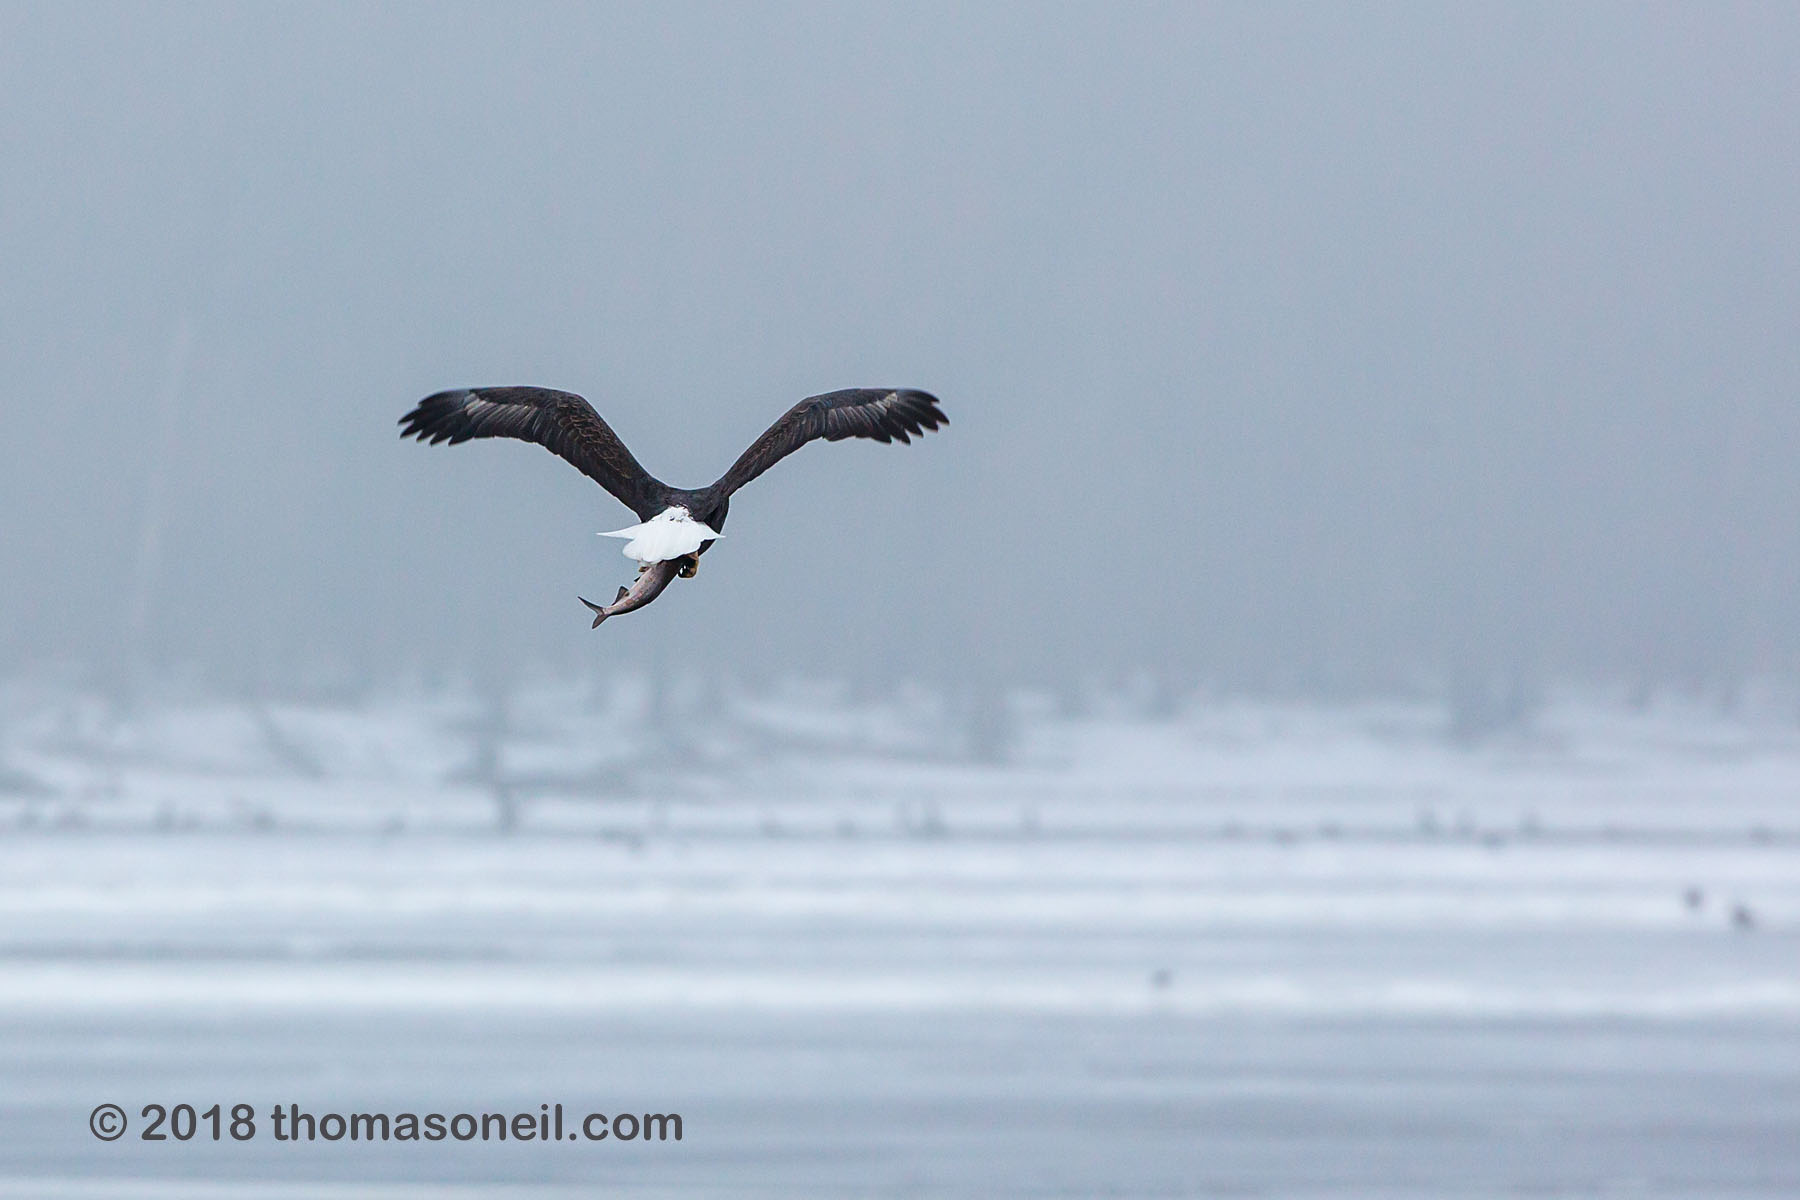 Bald eagle with a fish, Keokuk, Iowa, January 2018.  Click for next photo.